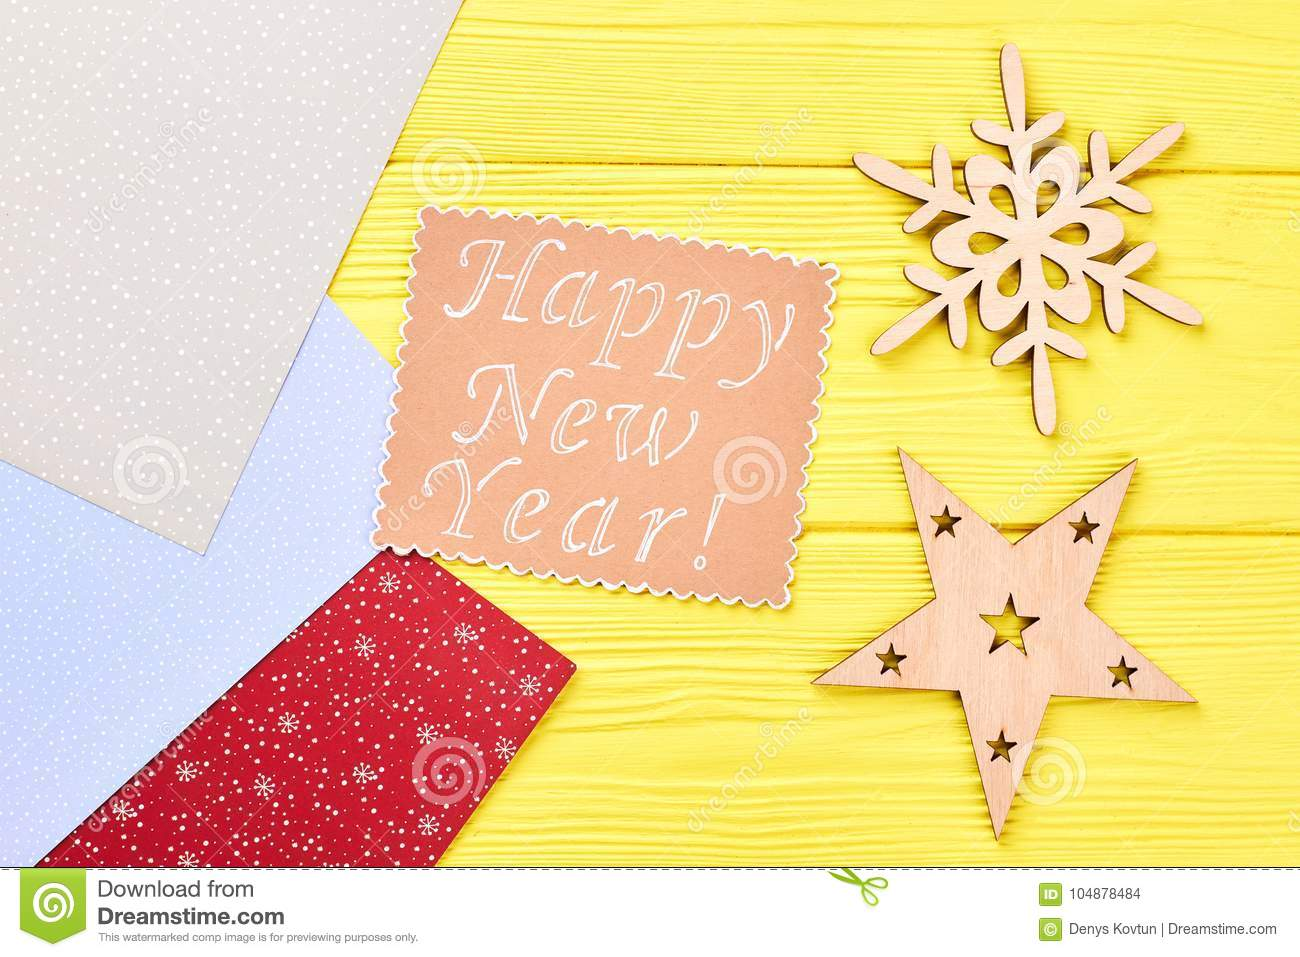 happy new year wooden background patterned colored craft paper paper message with text happy new year carved wooden christmas ornaments top view